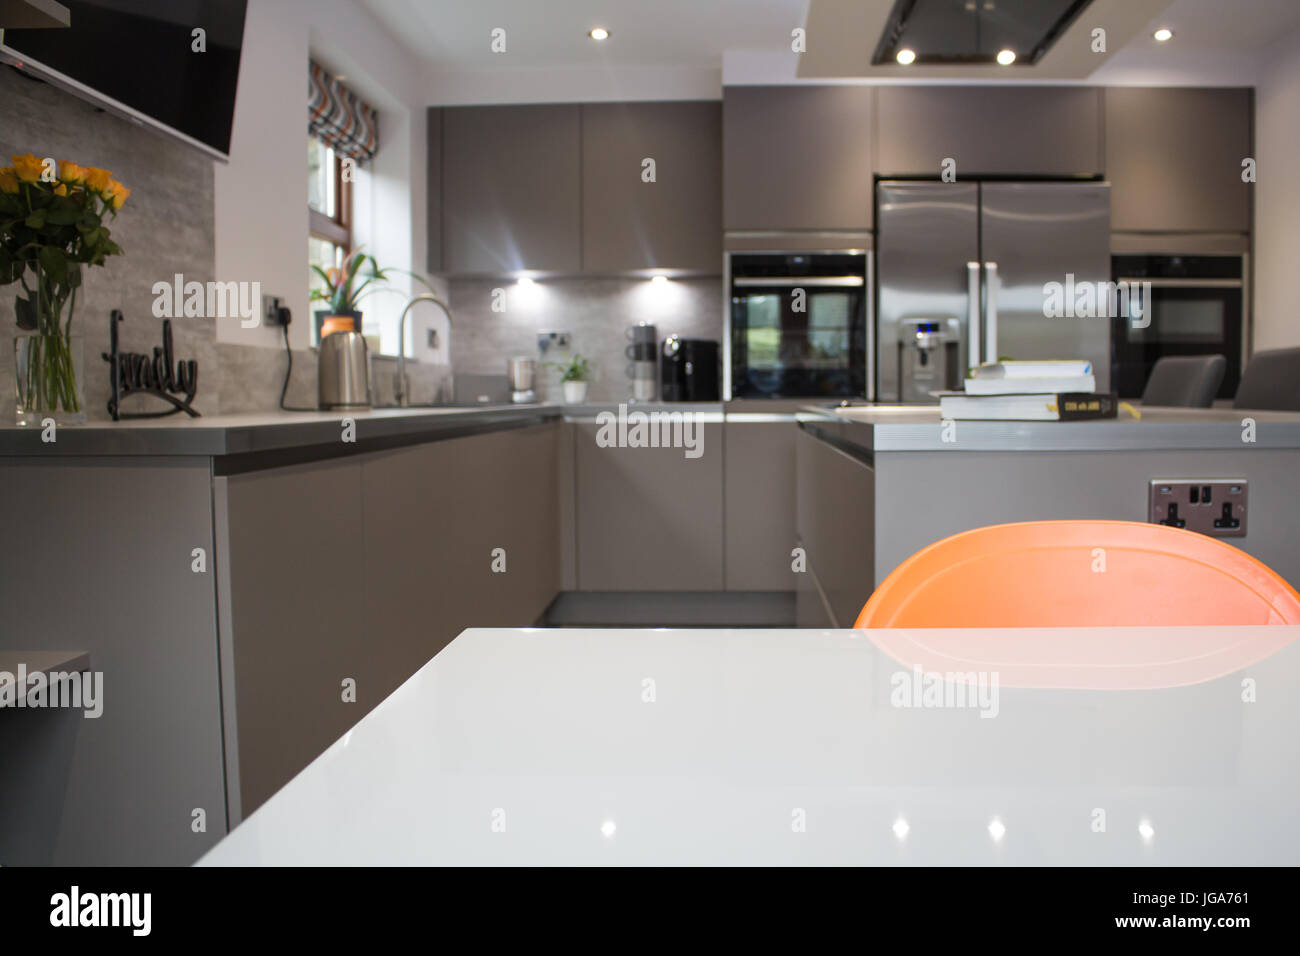 A Modern Luxury Matt Grey Kitchen Interior Showing A Centre Island